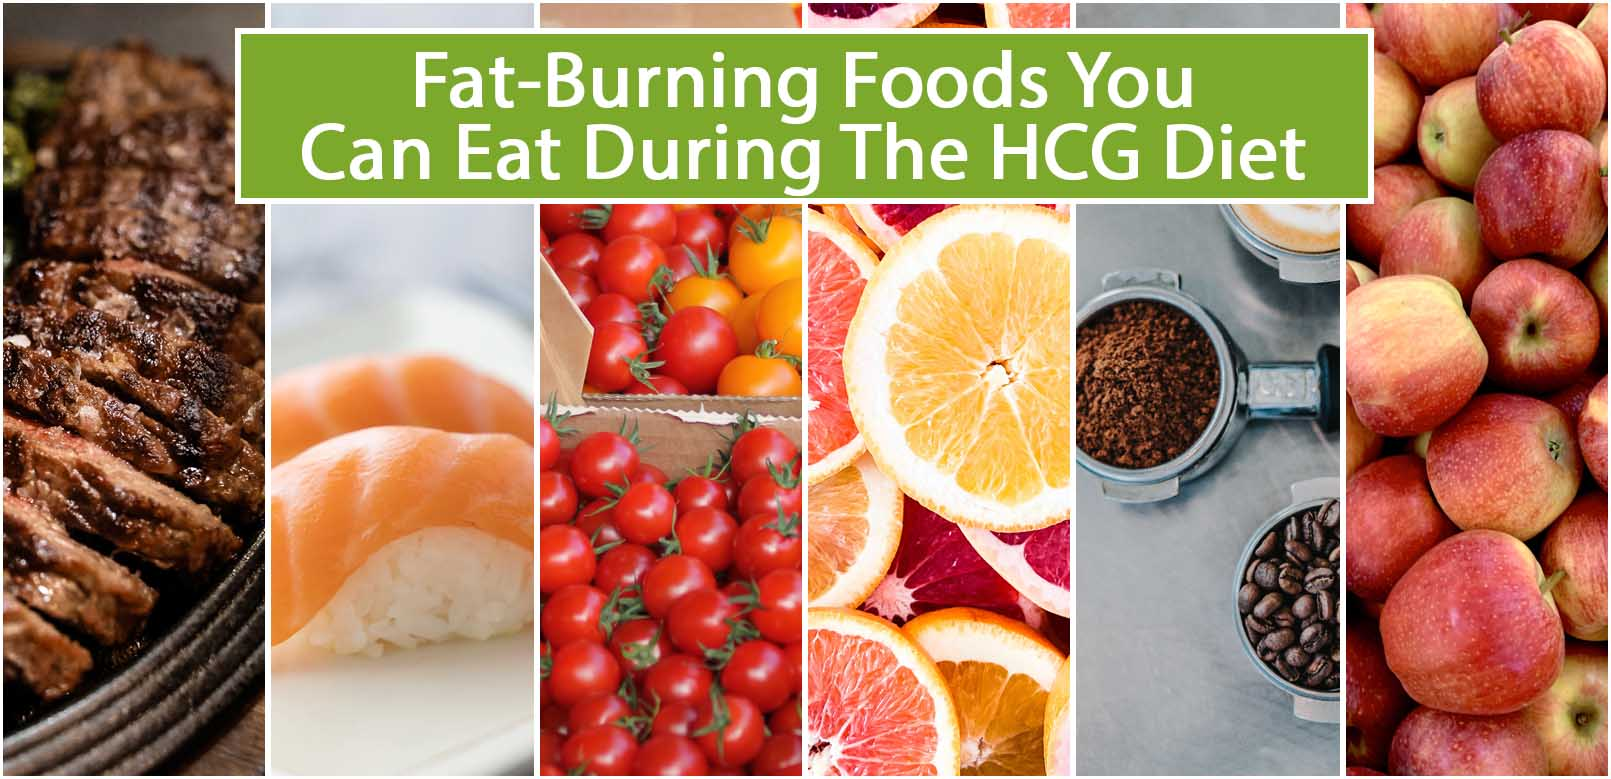 FAT-BURNING FOODS YOU CAN EAT DURING THE HCG DIET